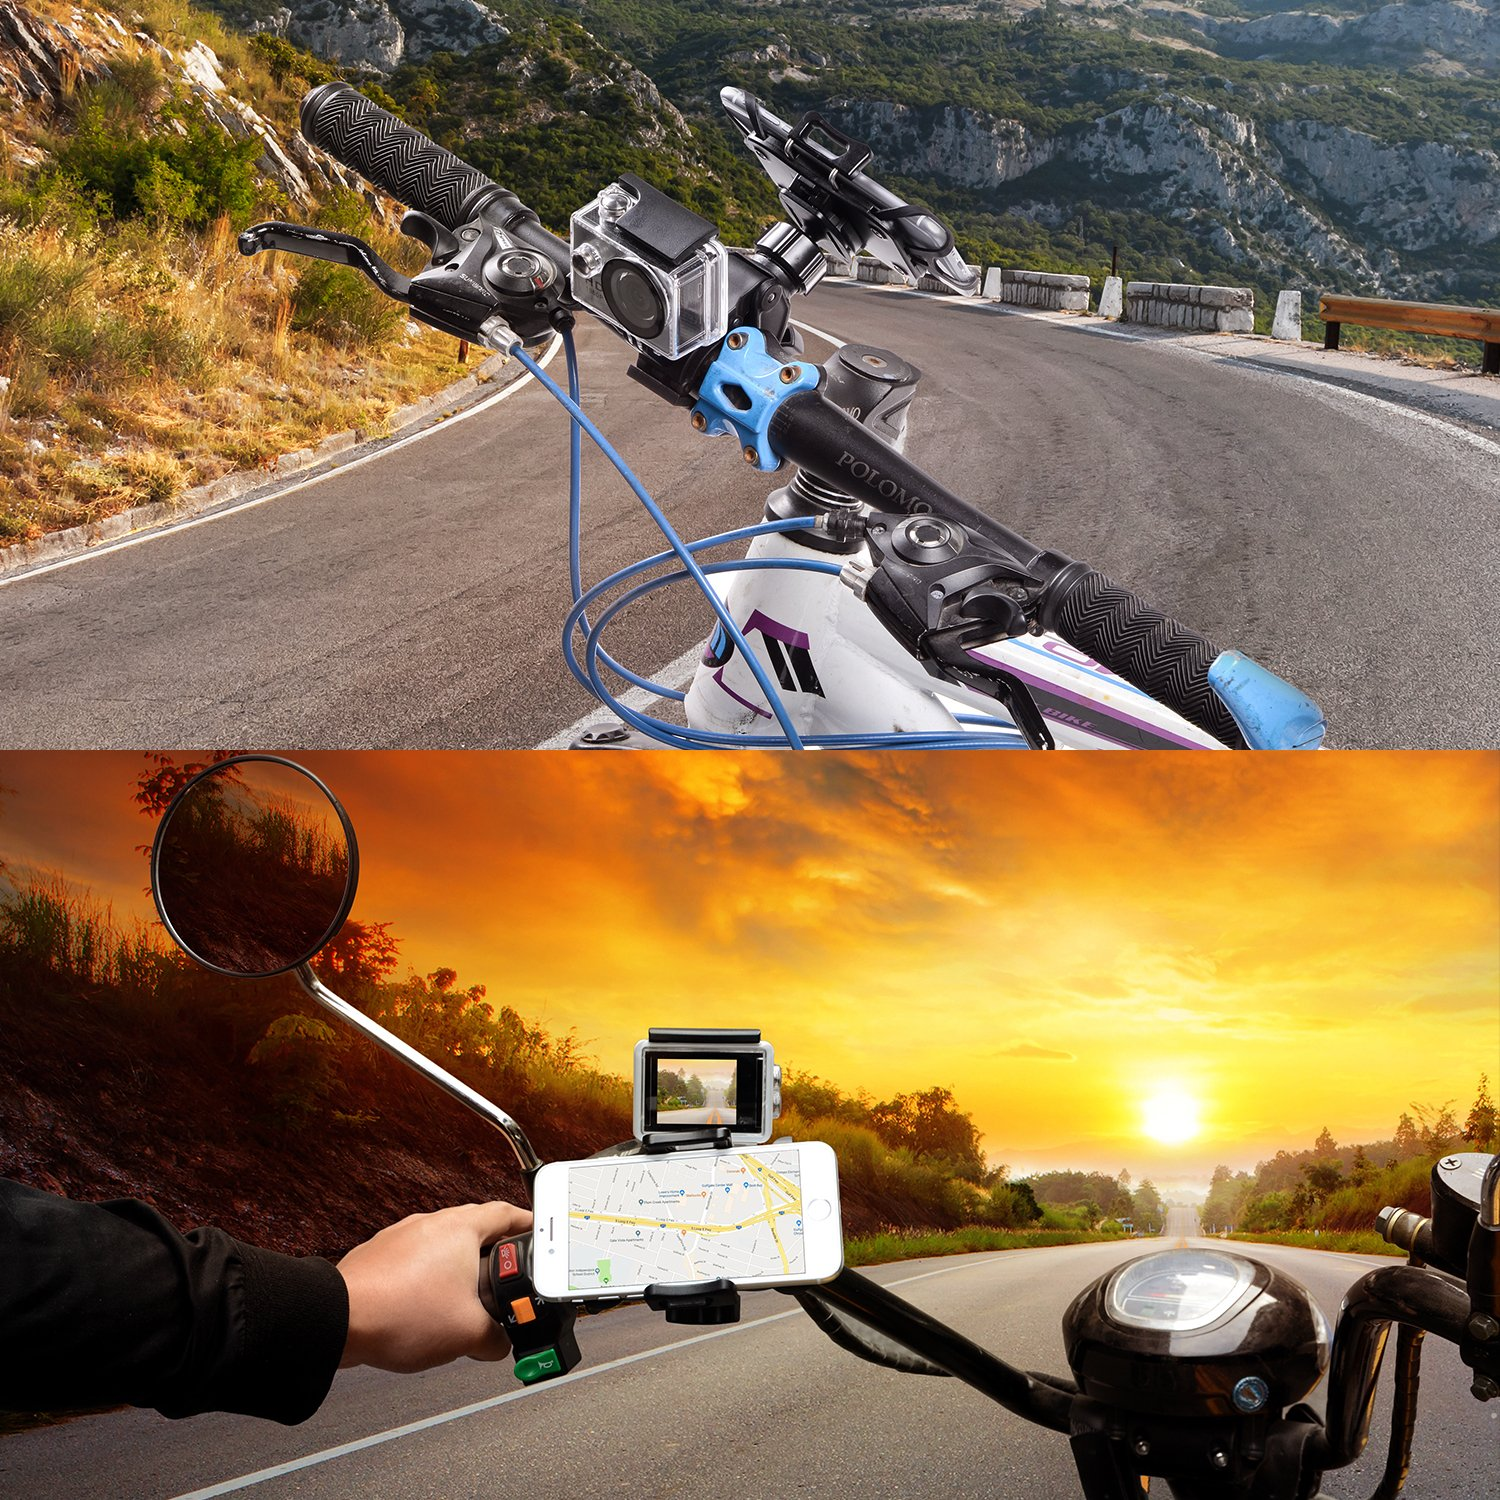 YELIN Bike Phone Mount Motorcycle Phone Holder Bike Camera Mount 2 in 1 Bicycle Holder Handlebar Clamp for Gopro Action Cam iPhone X 8 7 7 Plus 7s 6s Samsung Phone by YELIN (Image #7)